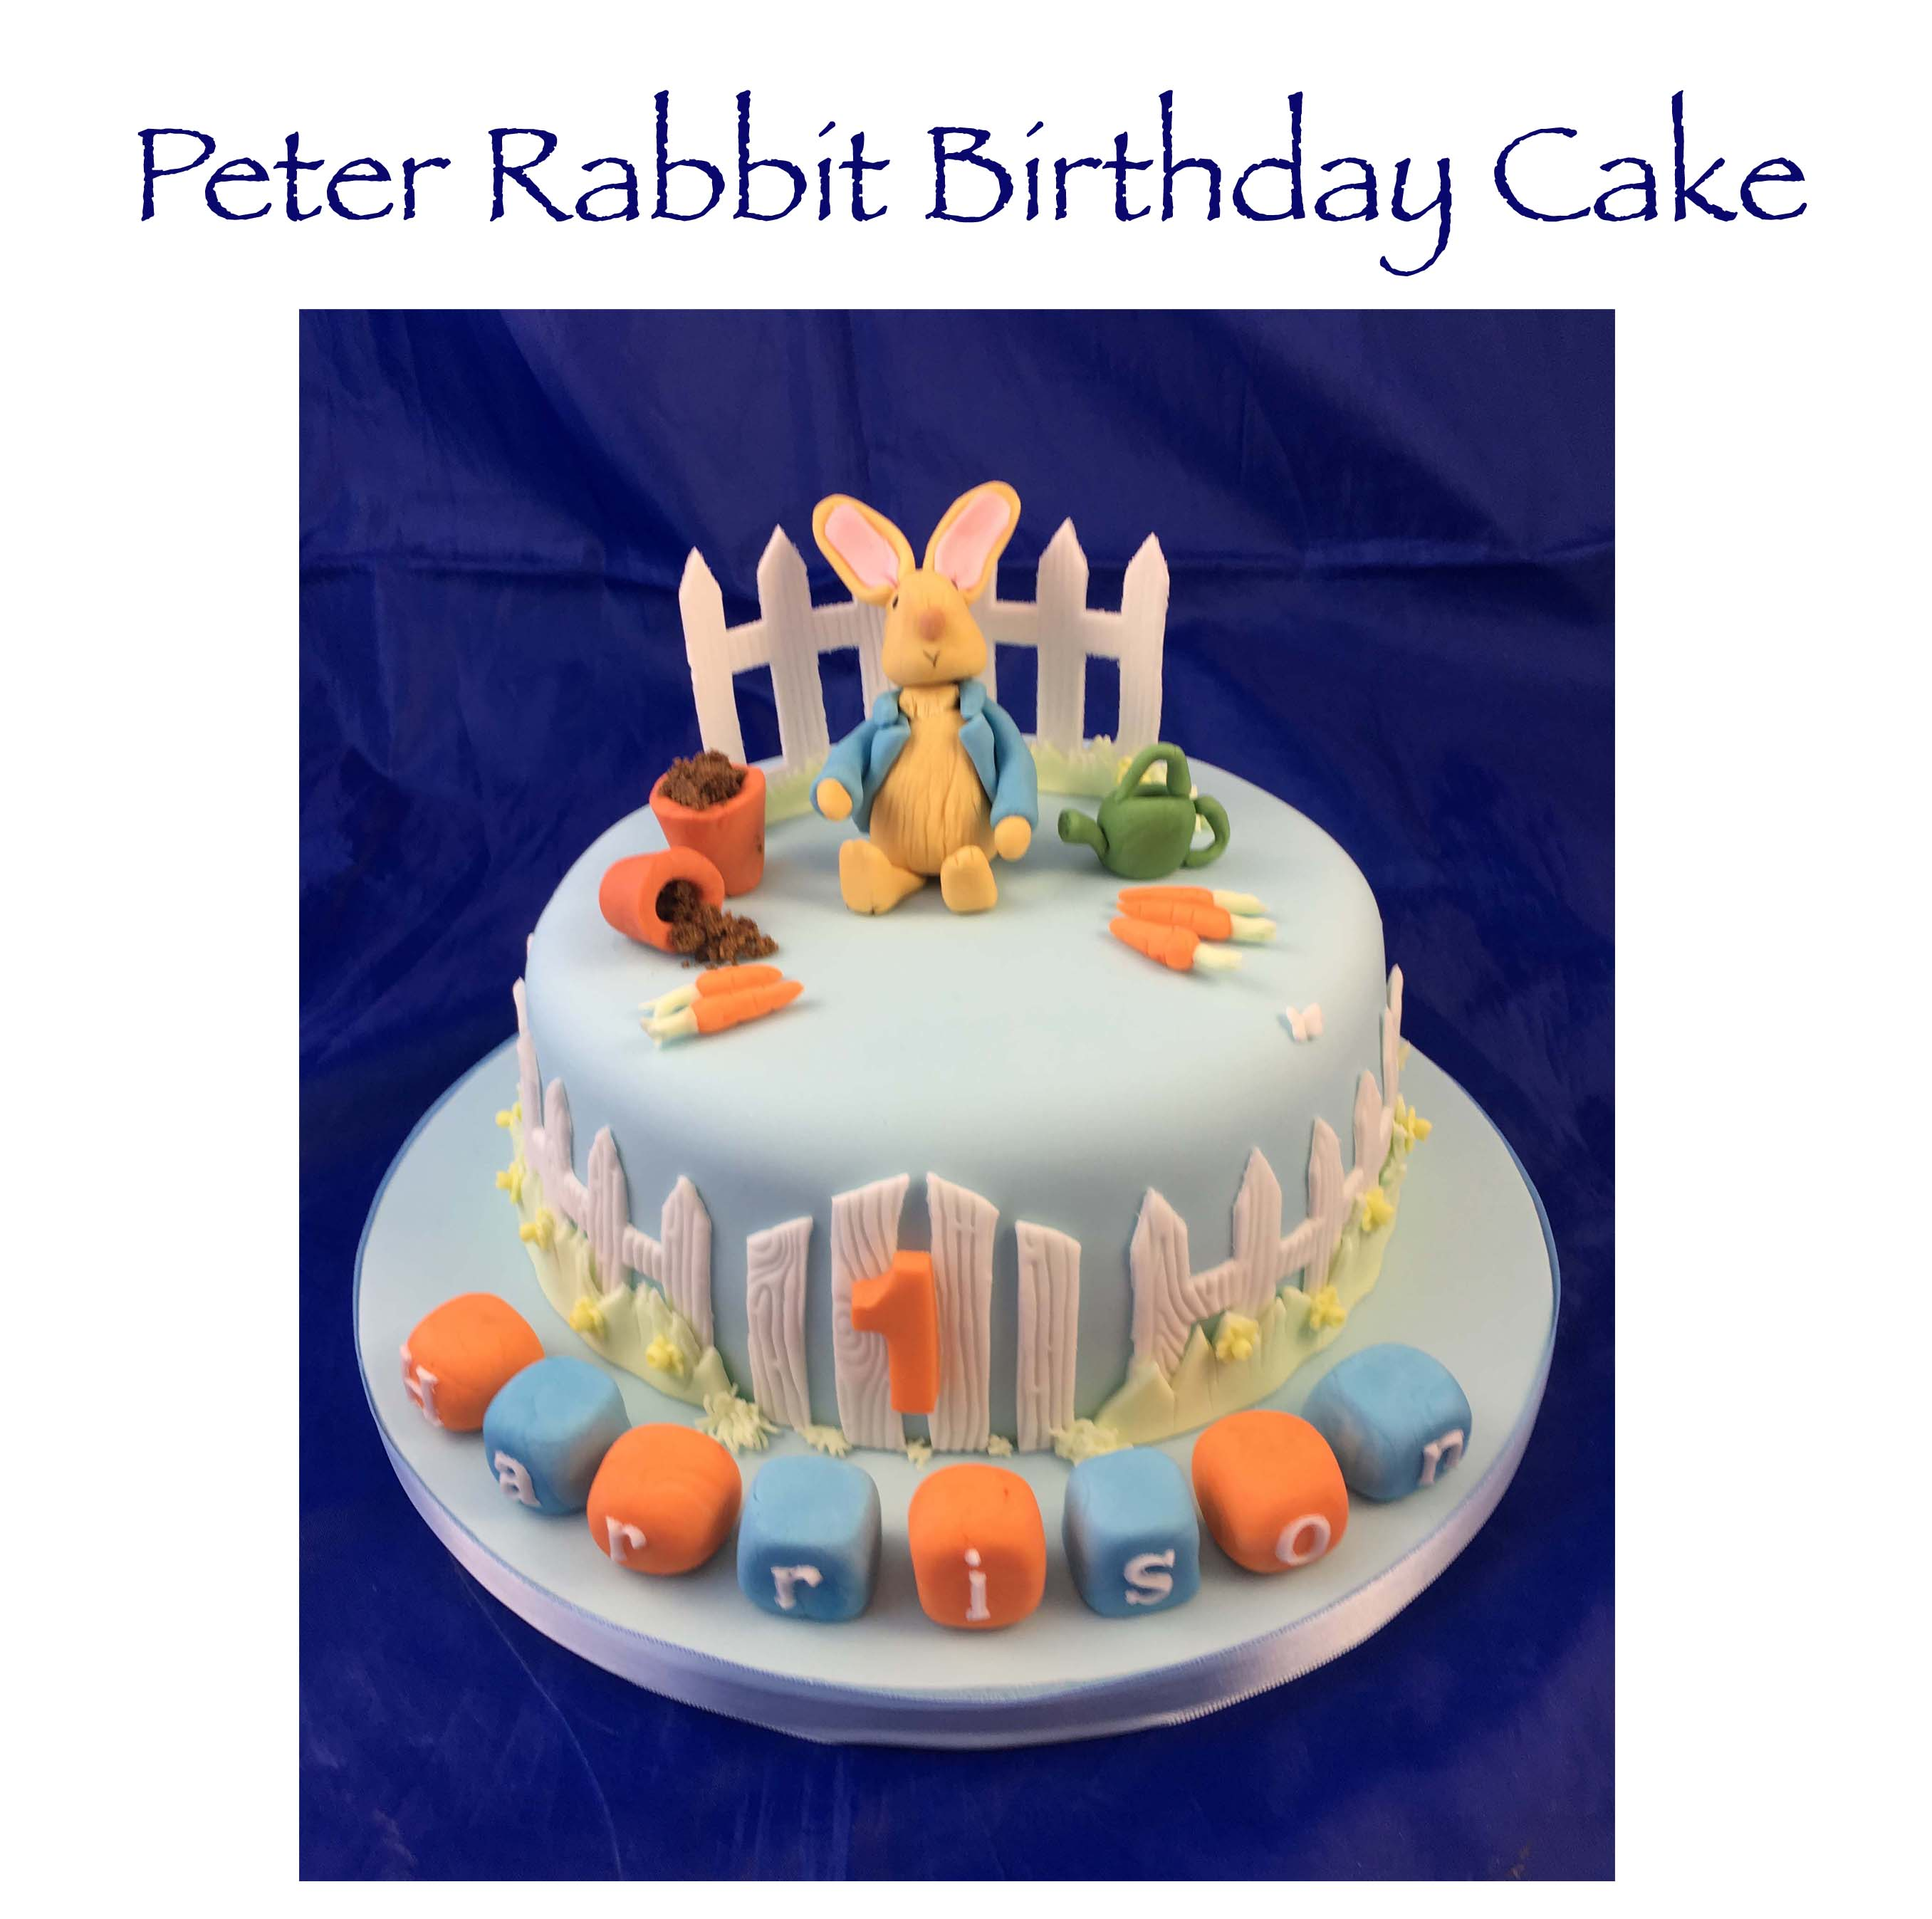 Peter Rabbit Birthday Cake 2